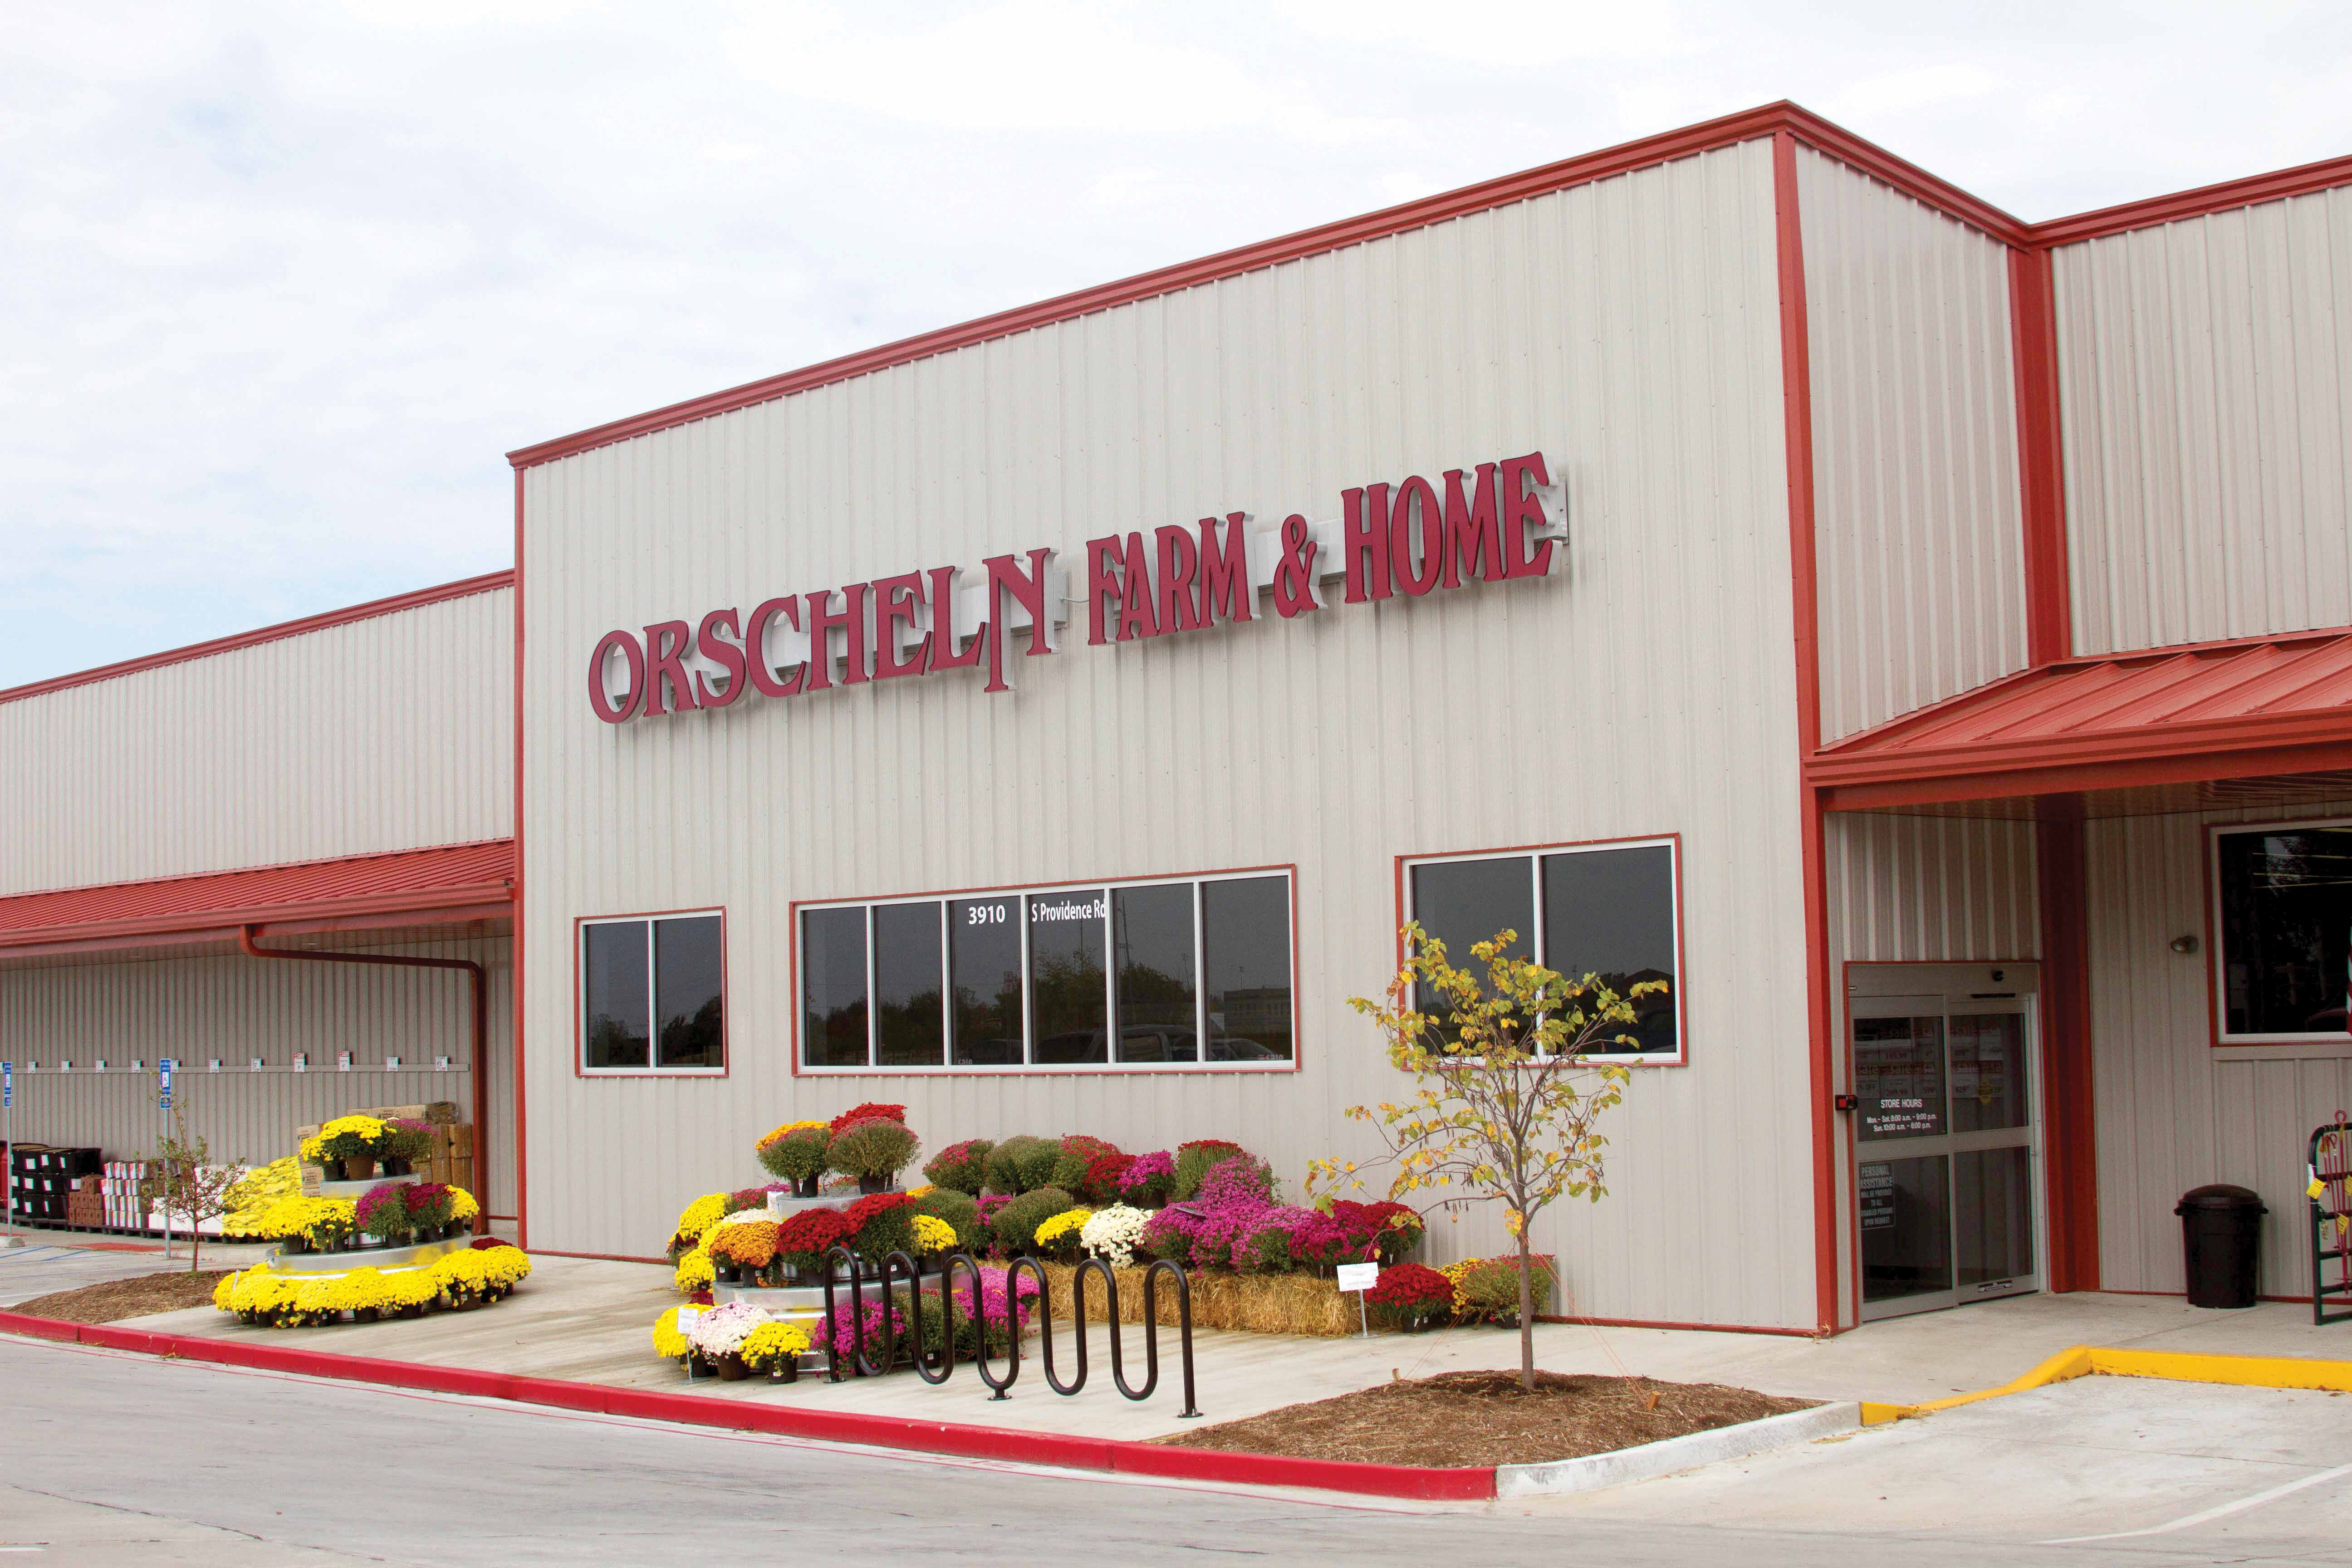 Front view of Orscheln Farm & Home Store in Columbia, Missouri 65203